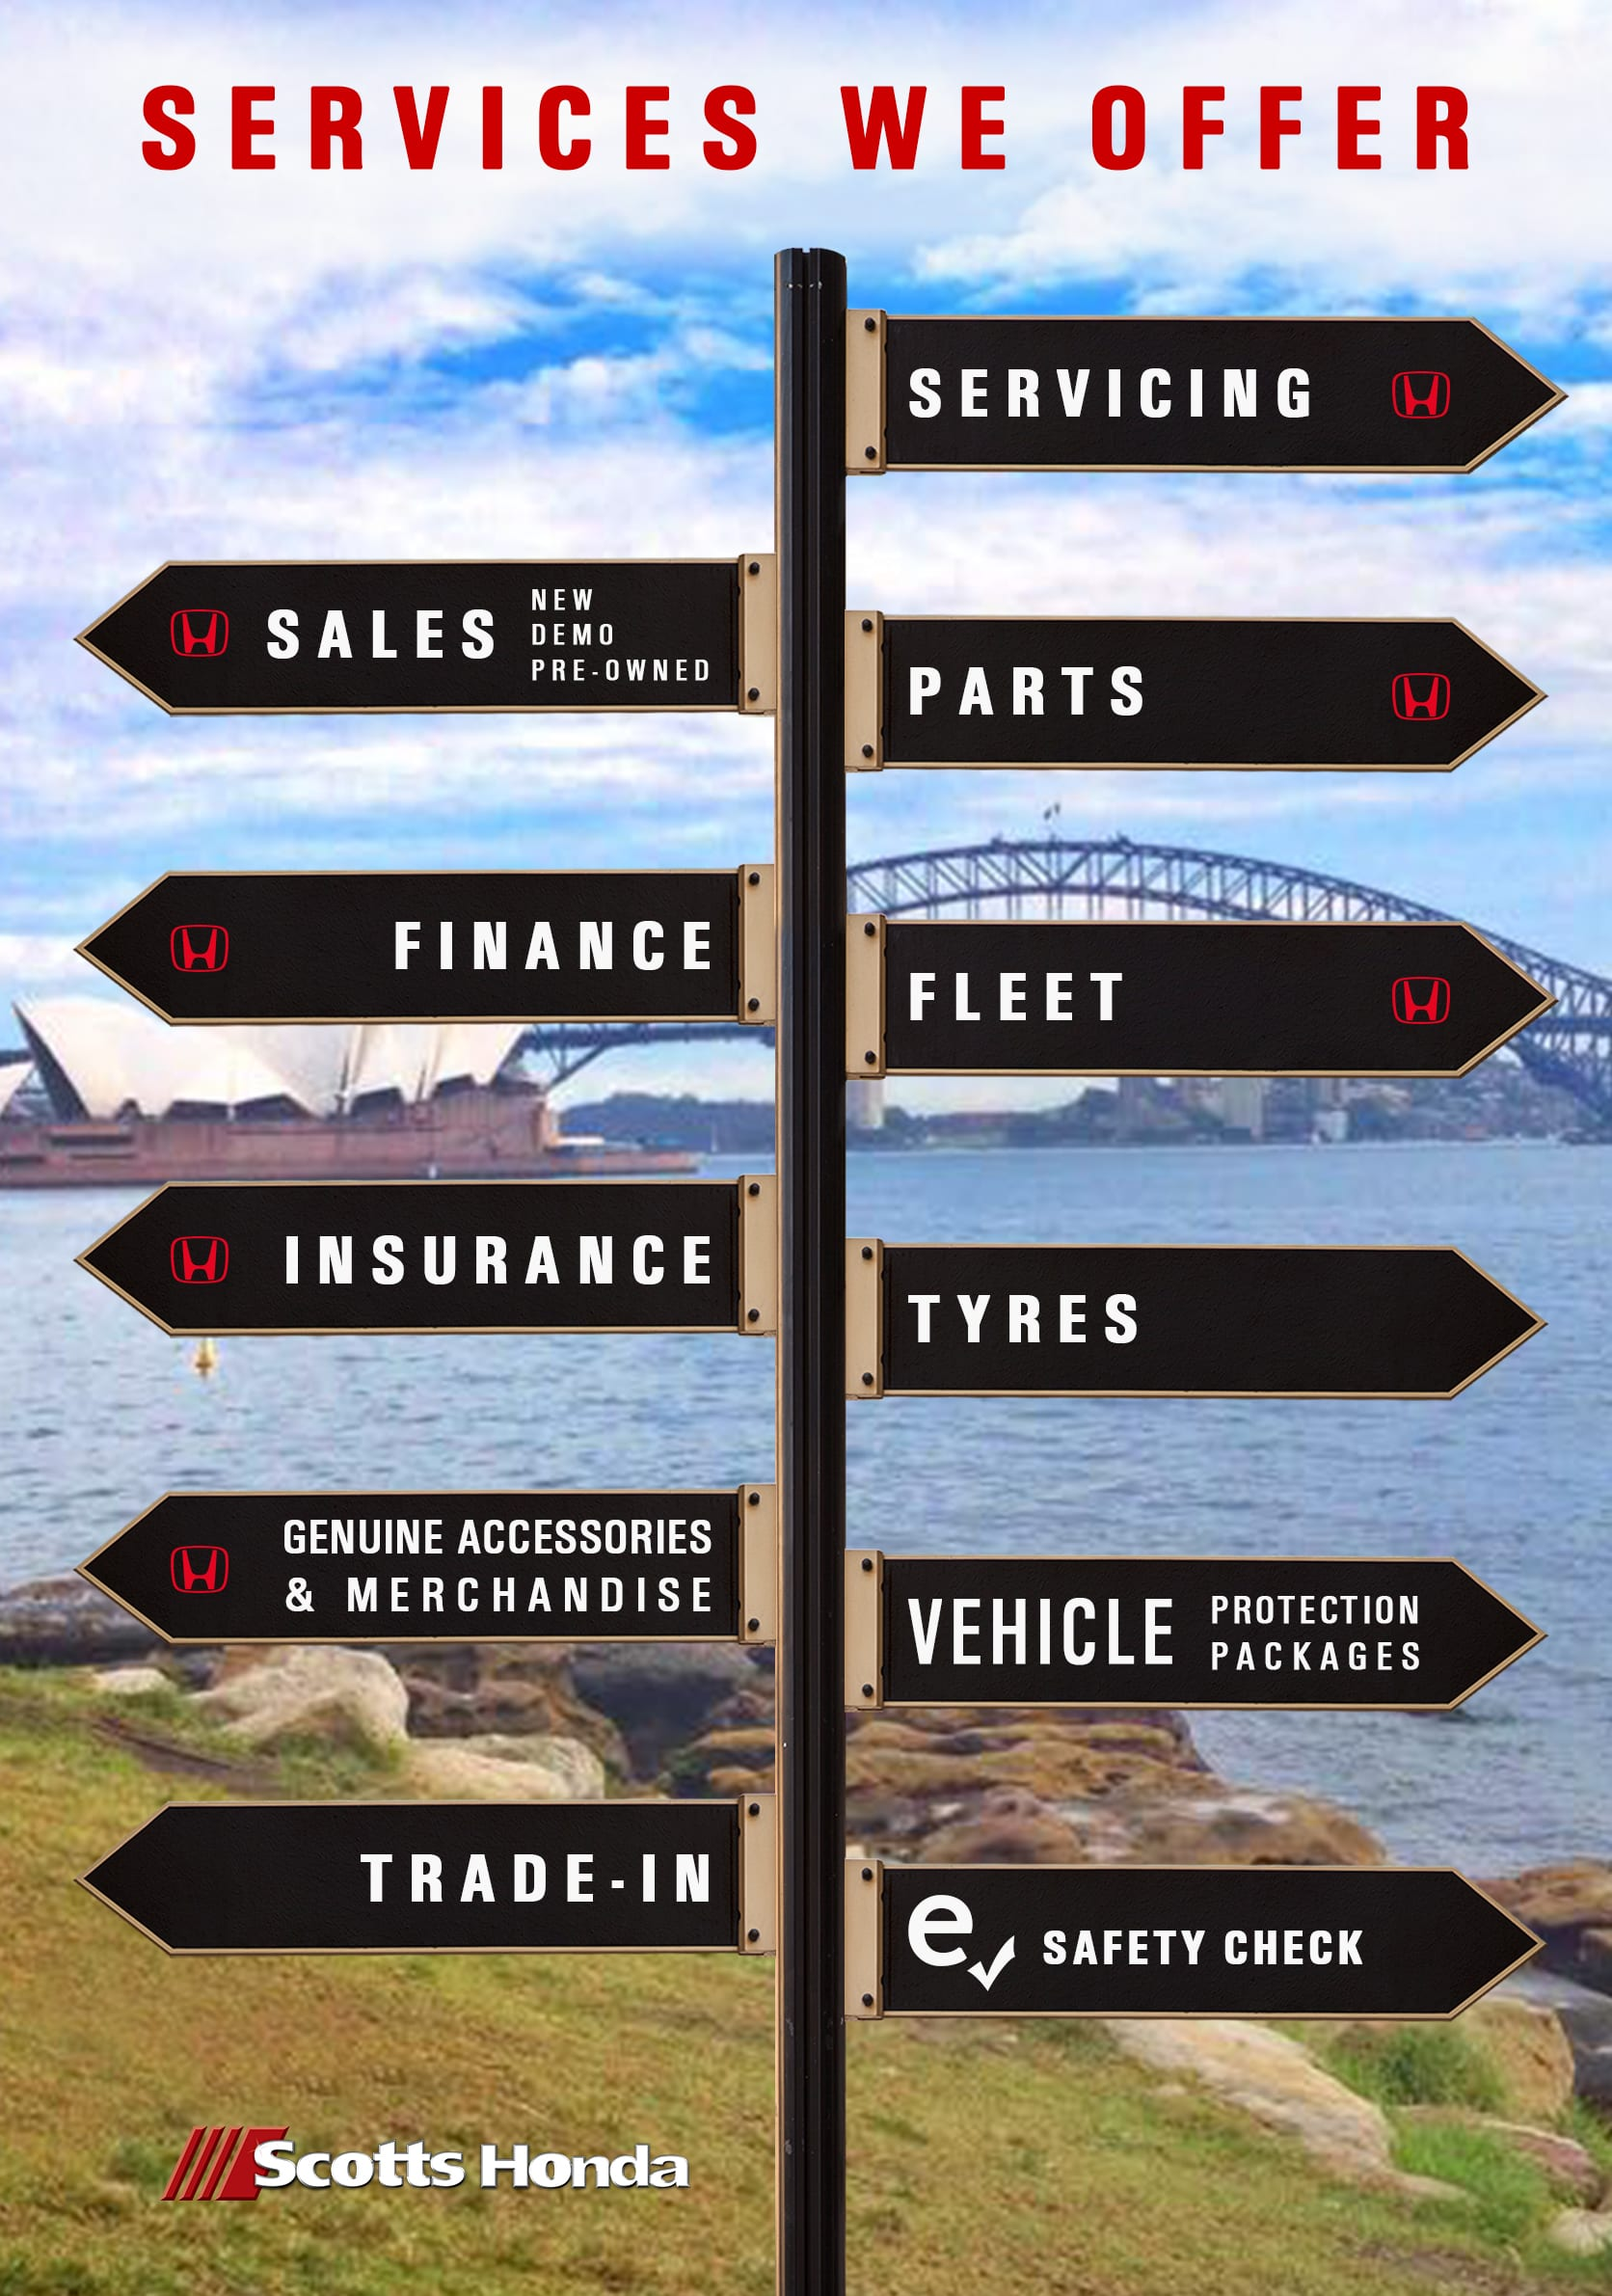 Services We Offer - Scotts Honda